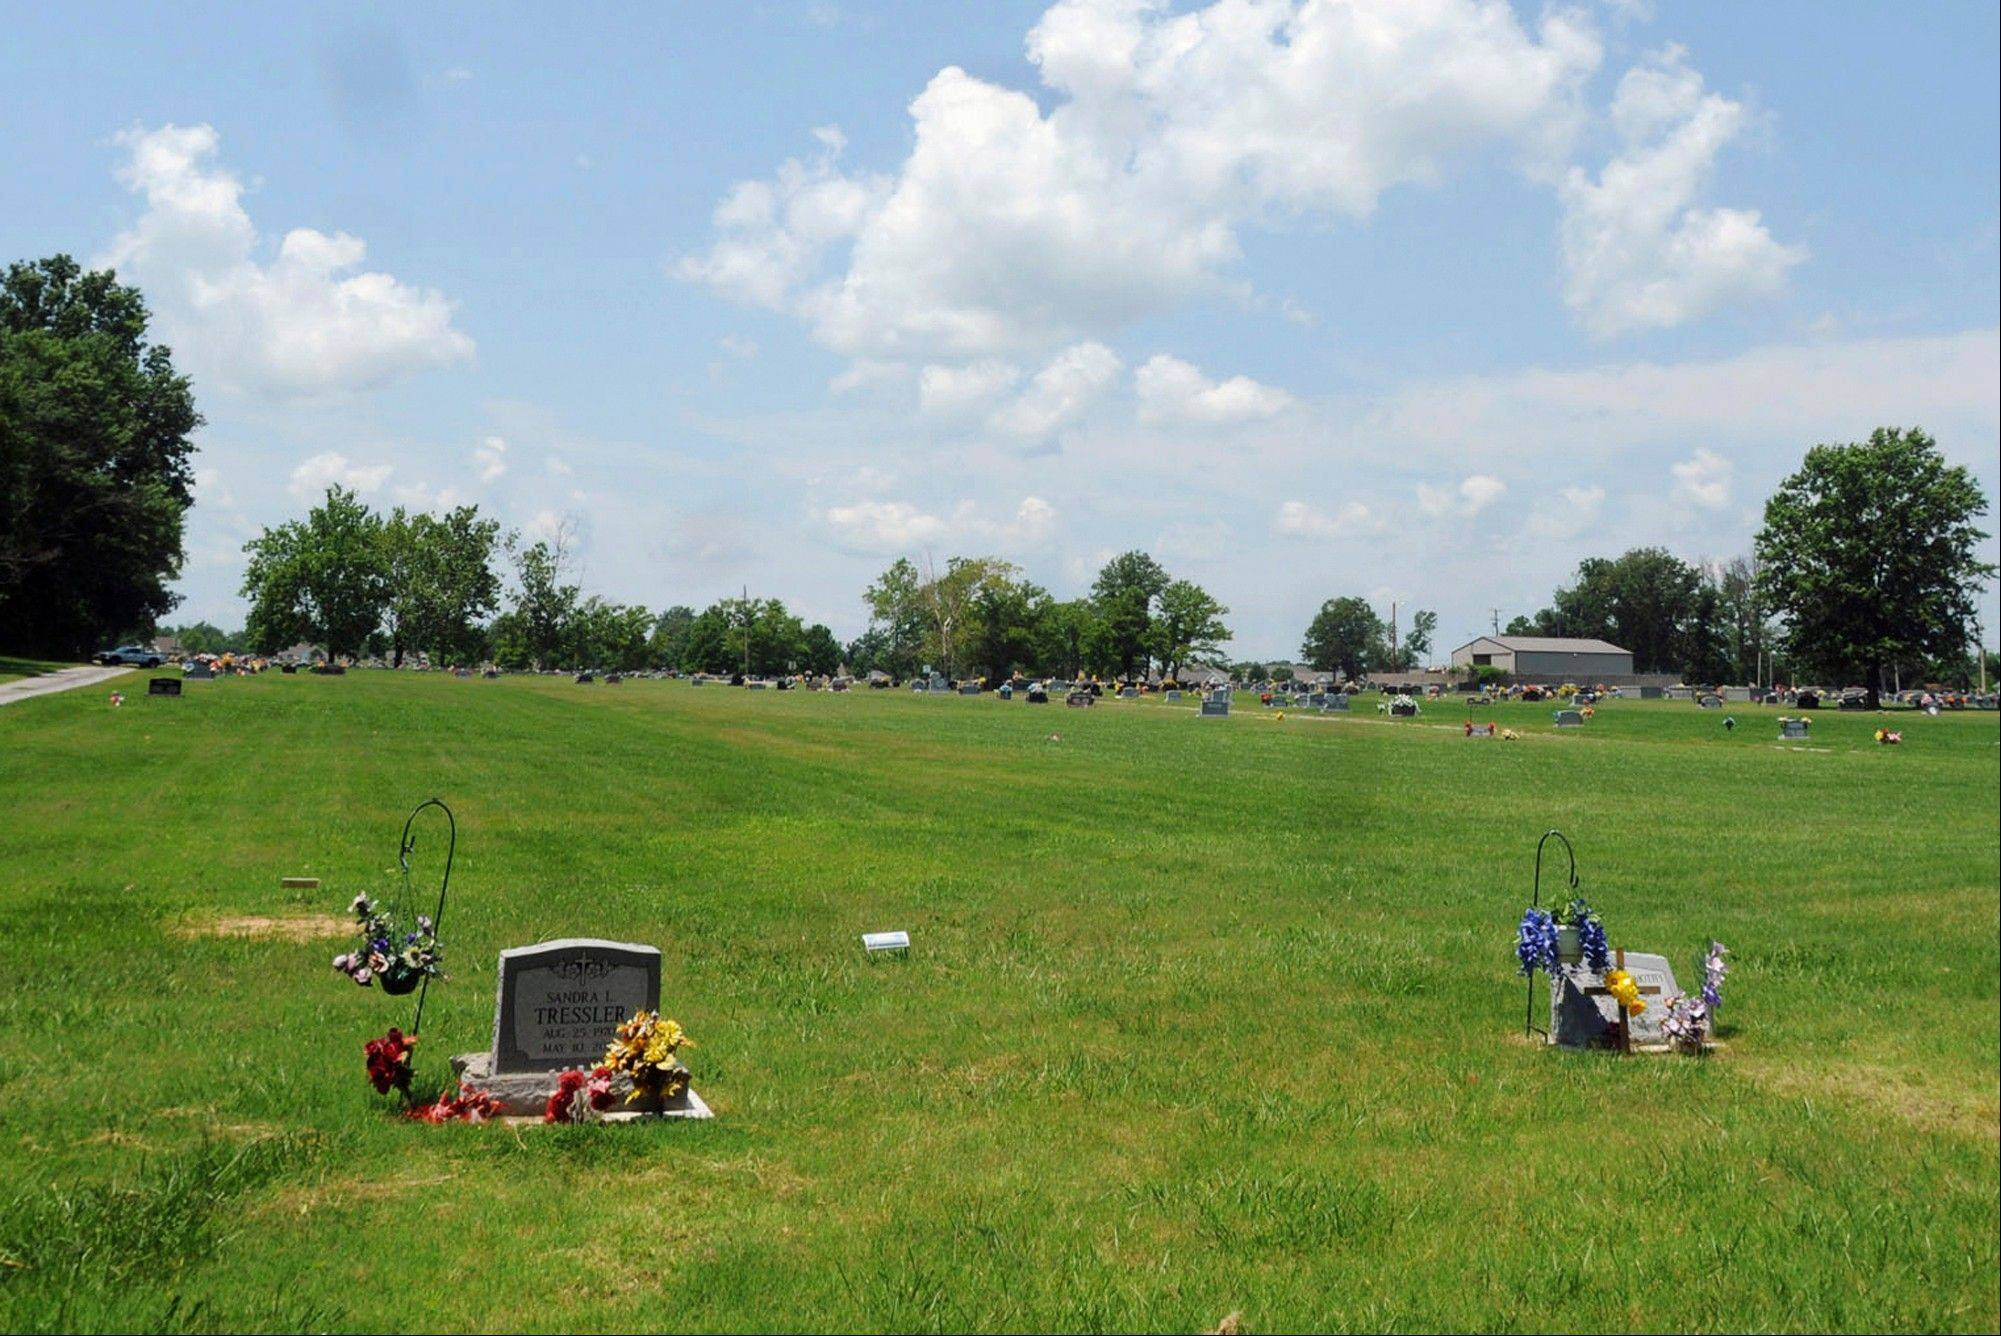 A portion of the Herrin Cemetery in Herrin, City leaders in the southern Illinois city agreed Monday, to give the go-ahead for more cemetery excavation work intended to find the remains of victims of a violent 1922 labor strike that killed dozens of replacement workers.